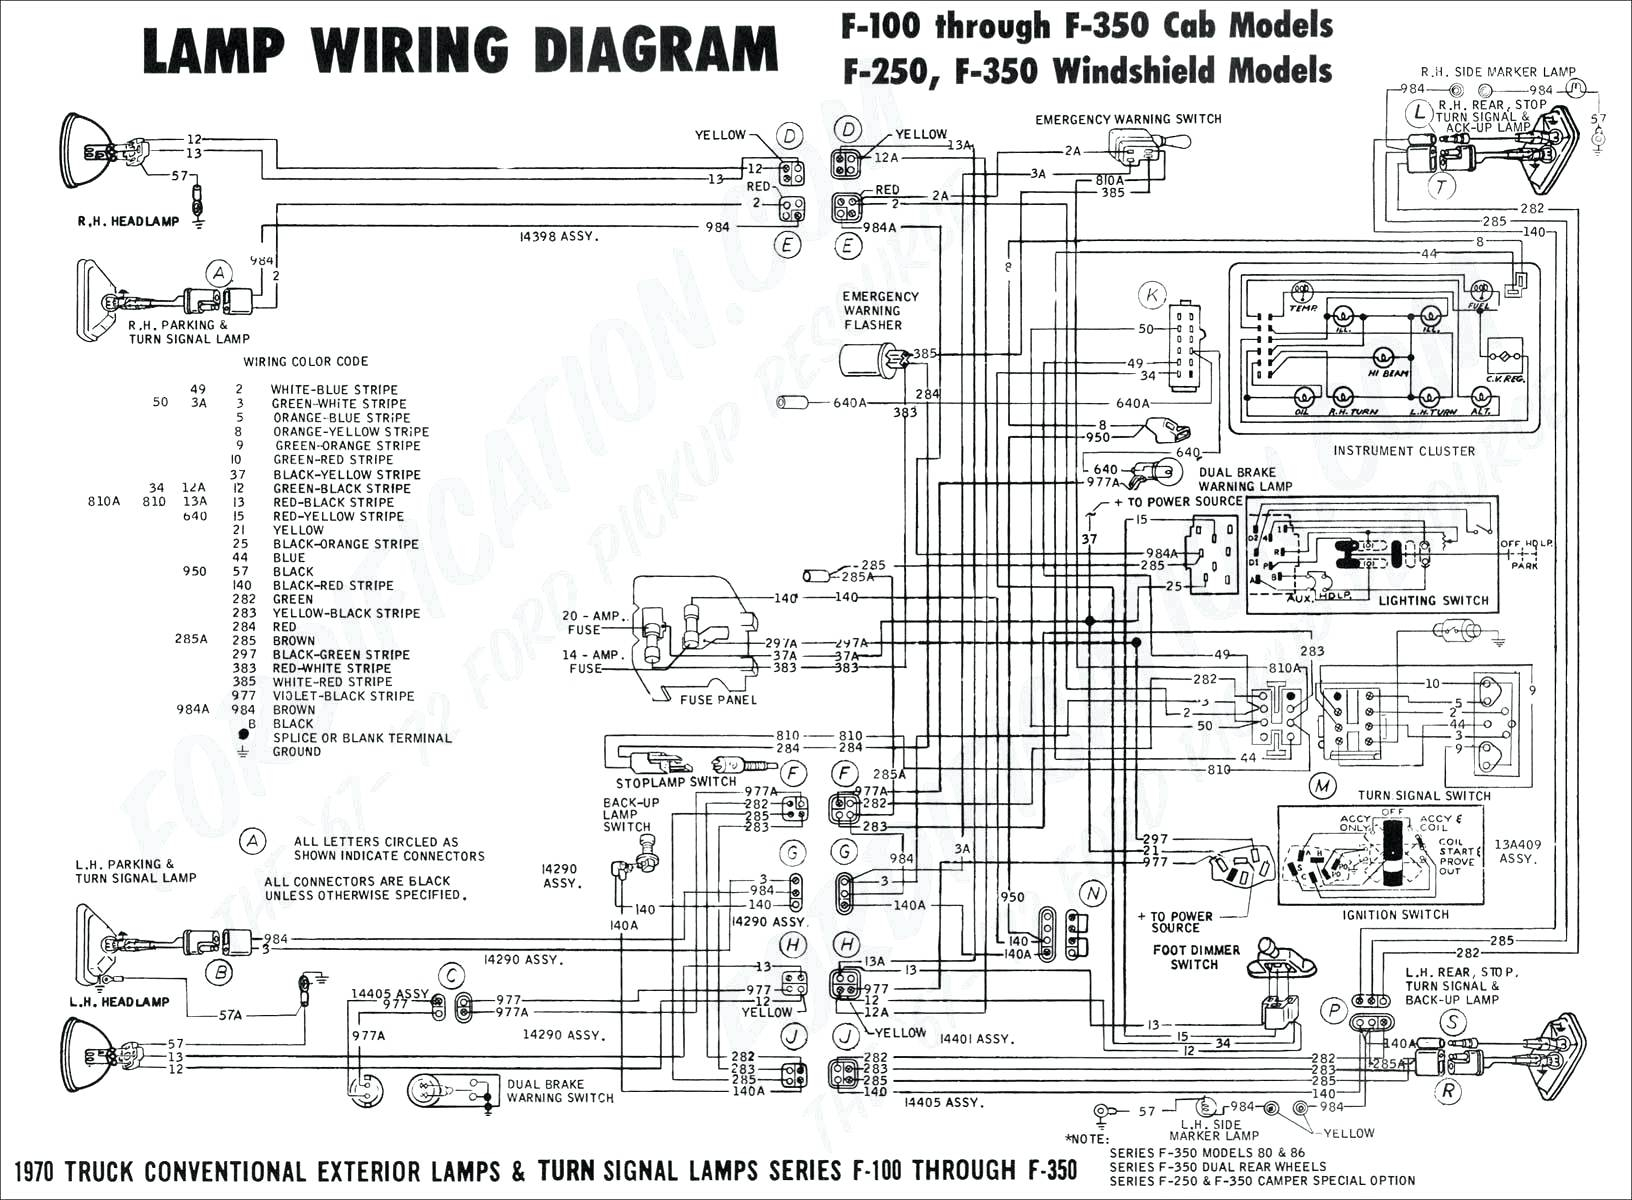 2003 dodge ram 2500 trailer wiring diagram download